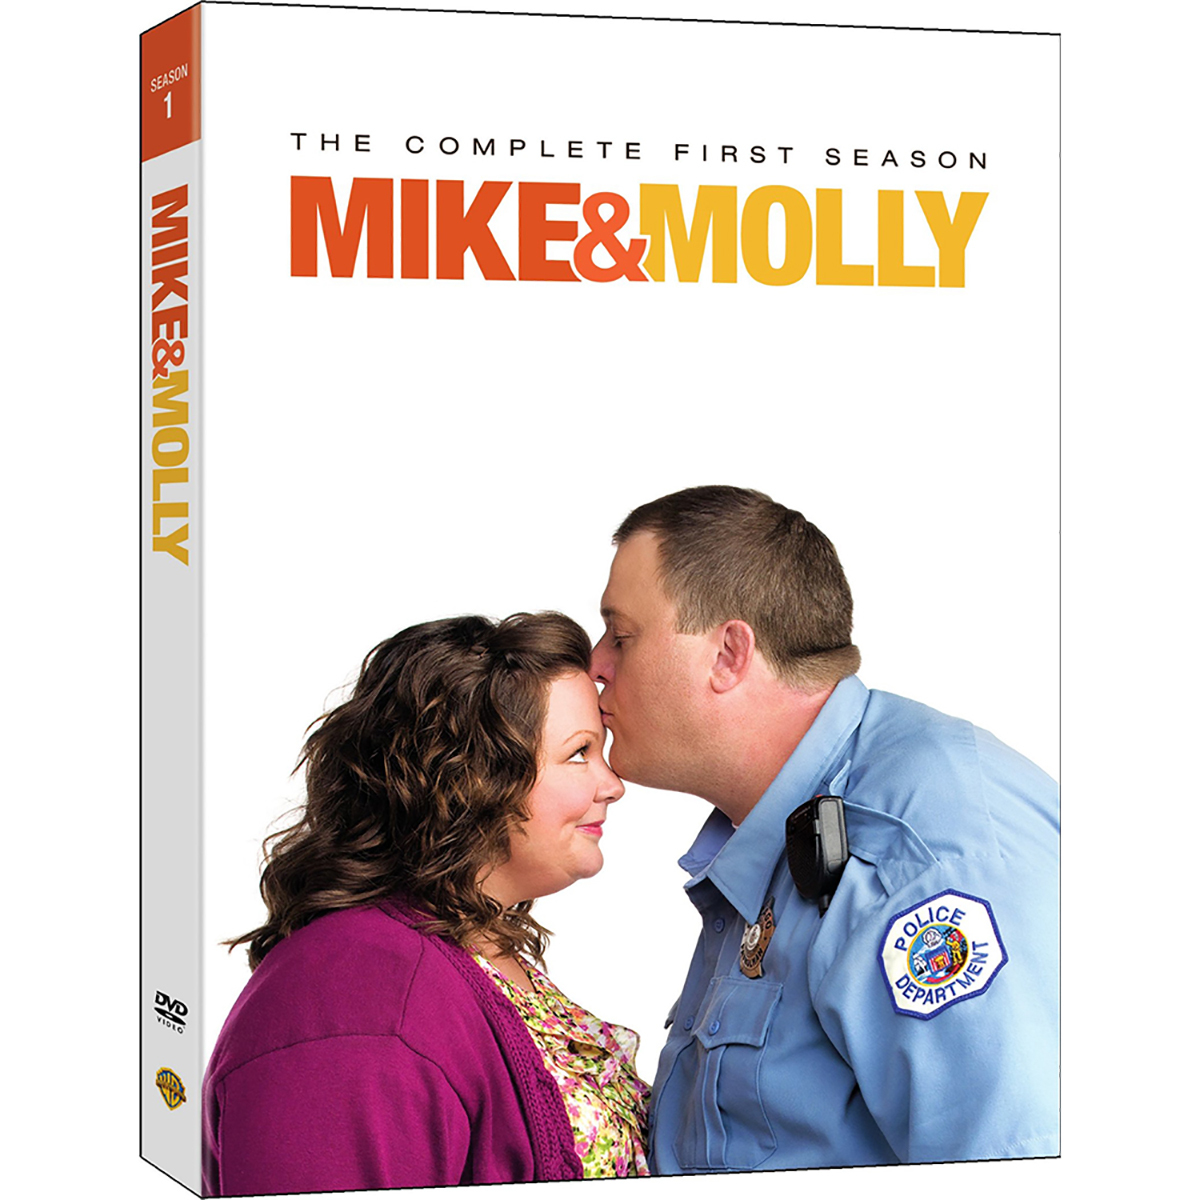 Mike & Molly: Season 1 DVD -  DVDs & Videos 4334-303810